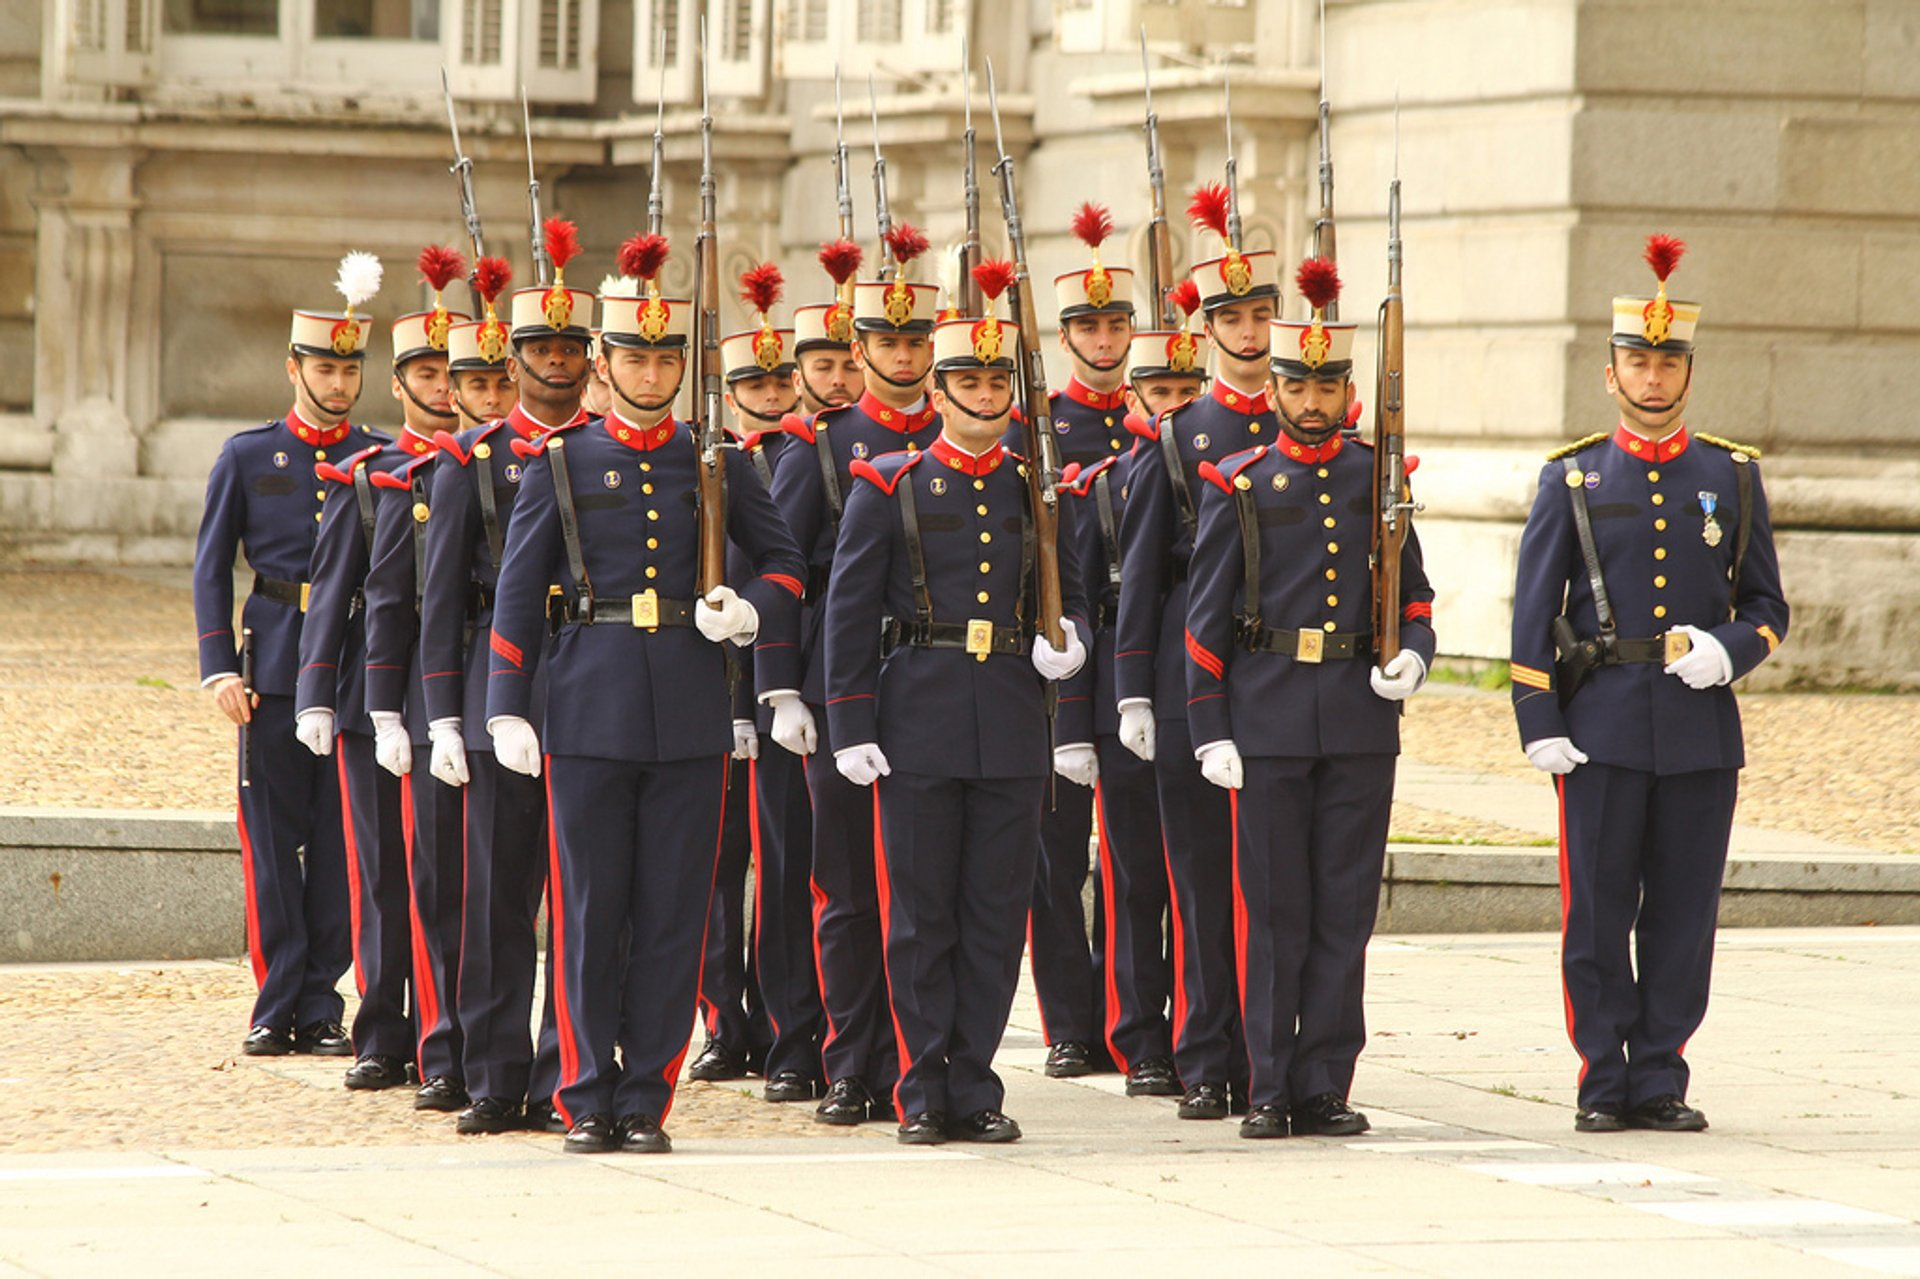 Solemn Changing of the Guard at the Royal Palace in Madrid 2020 - Best Time